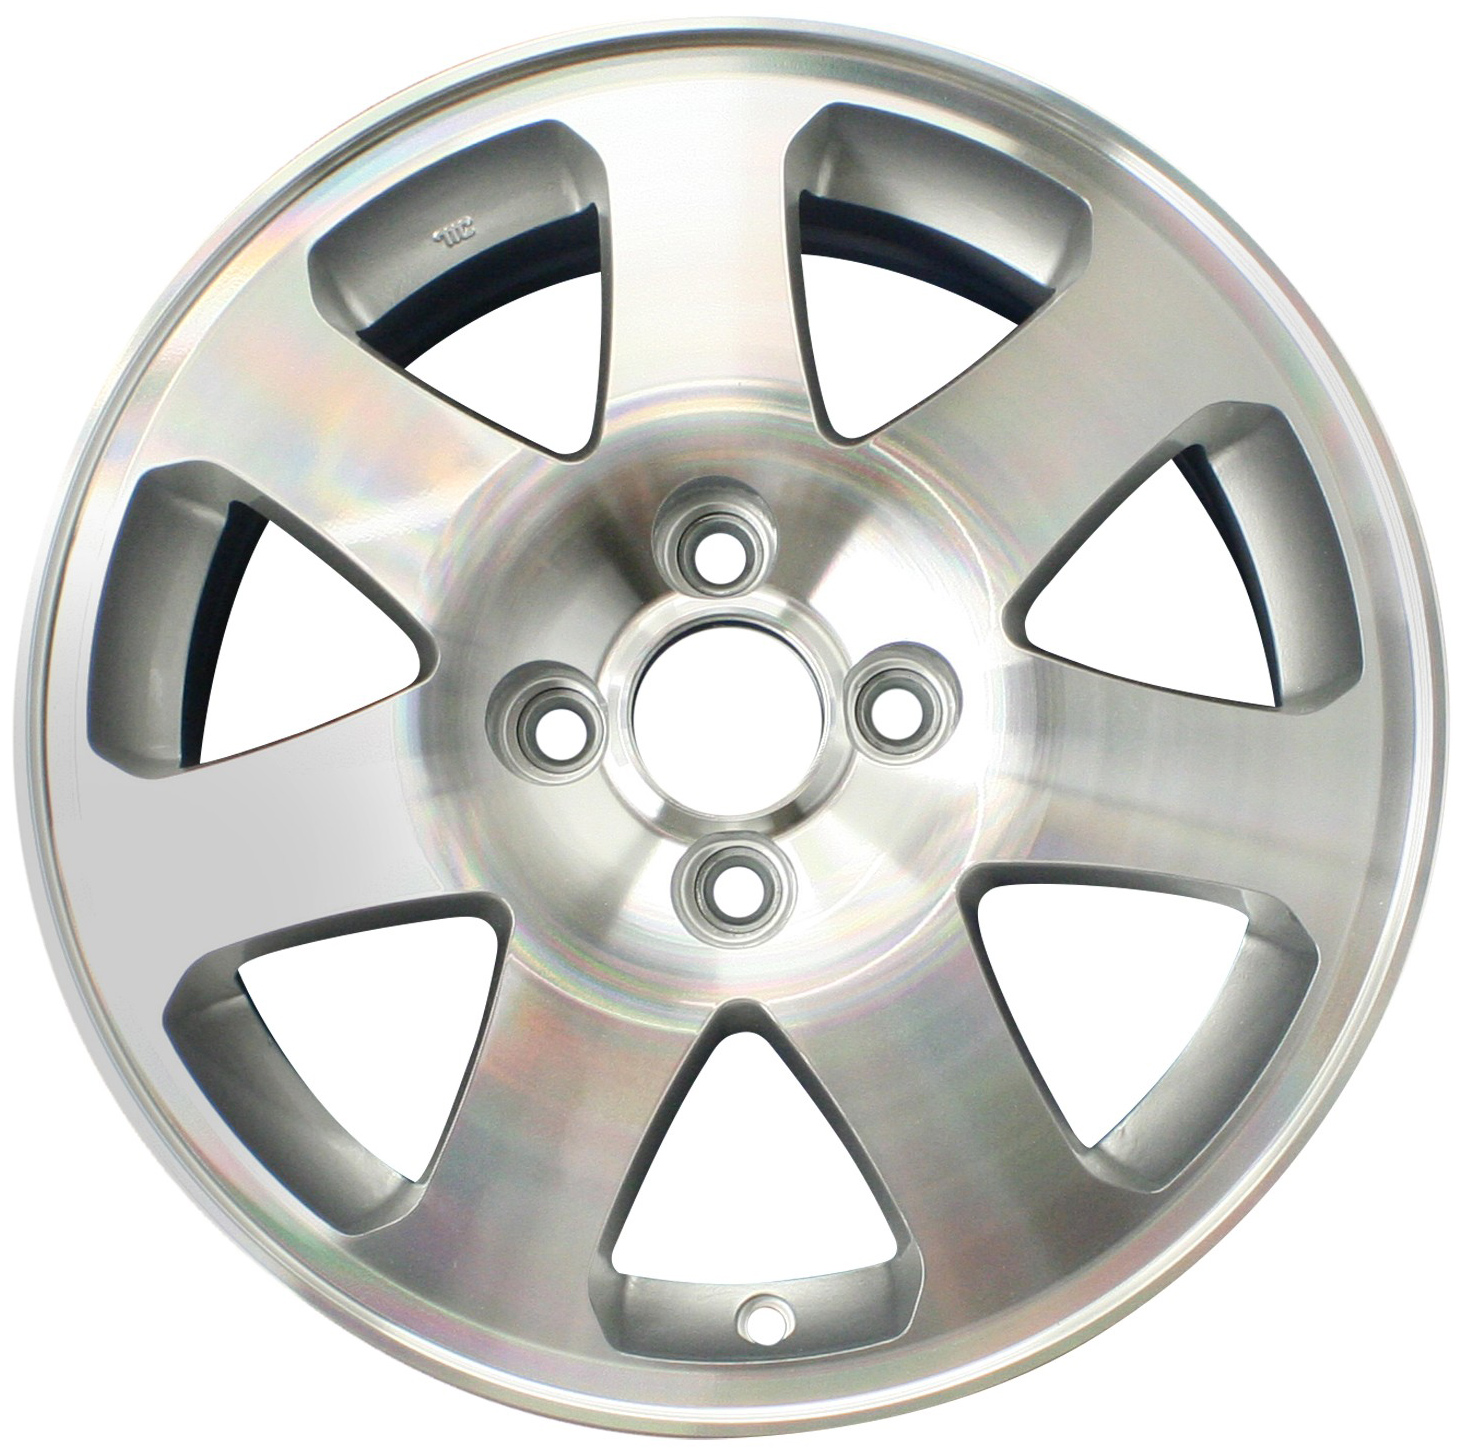 "Reconditioned OEM 15"" 15x6 Alloy Wheel Rim For 1999-2005"